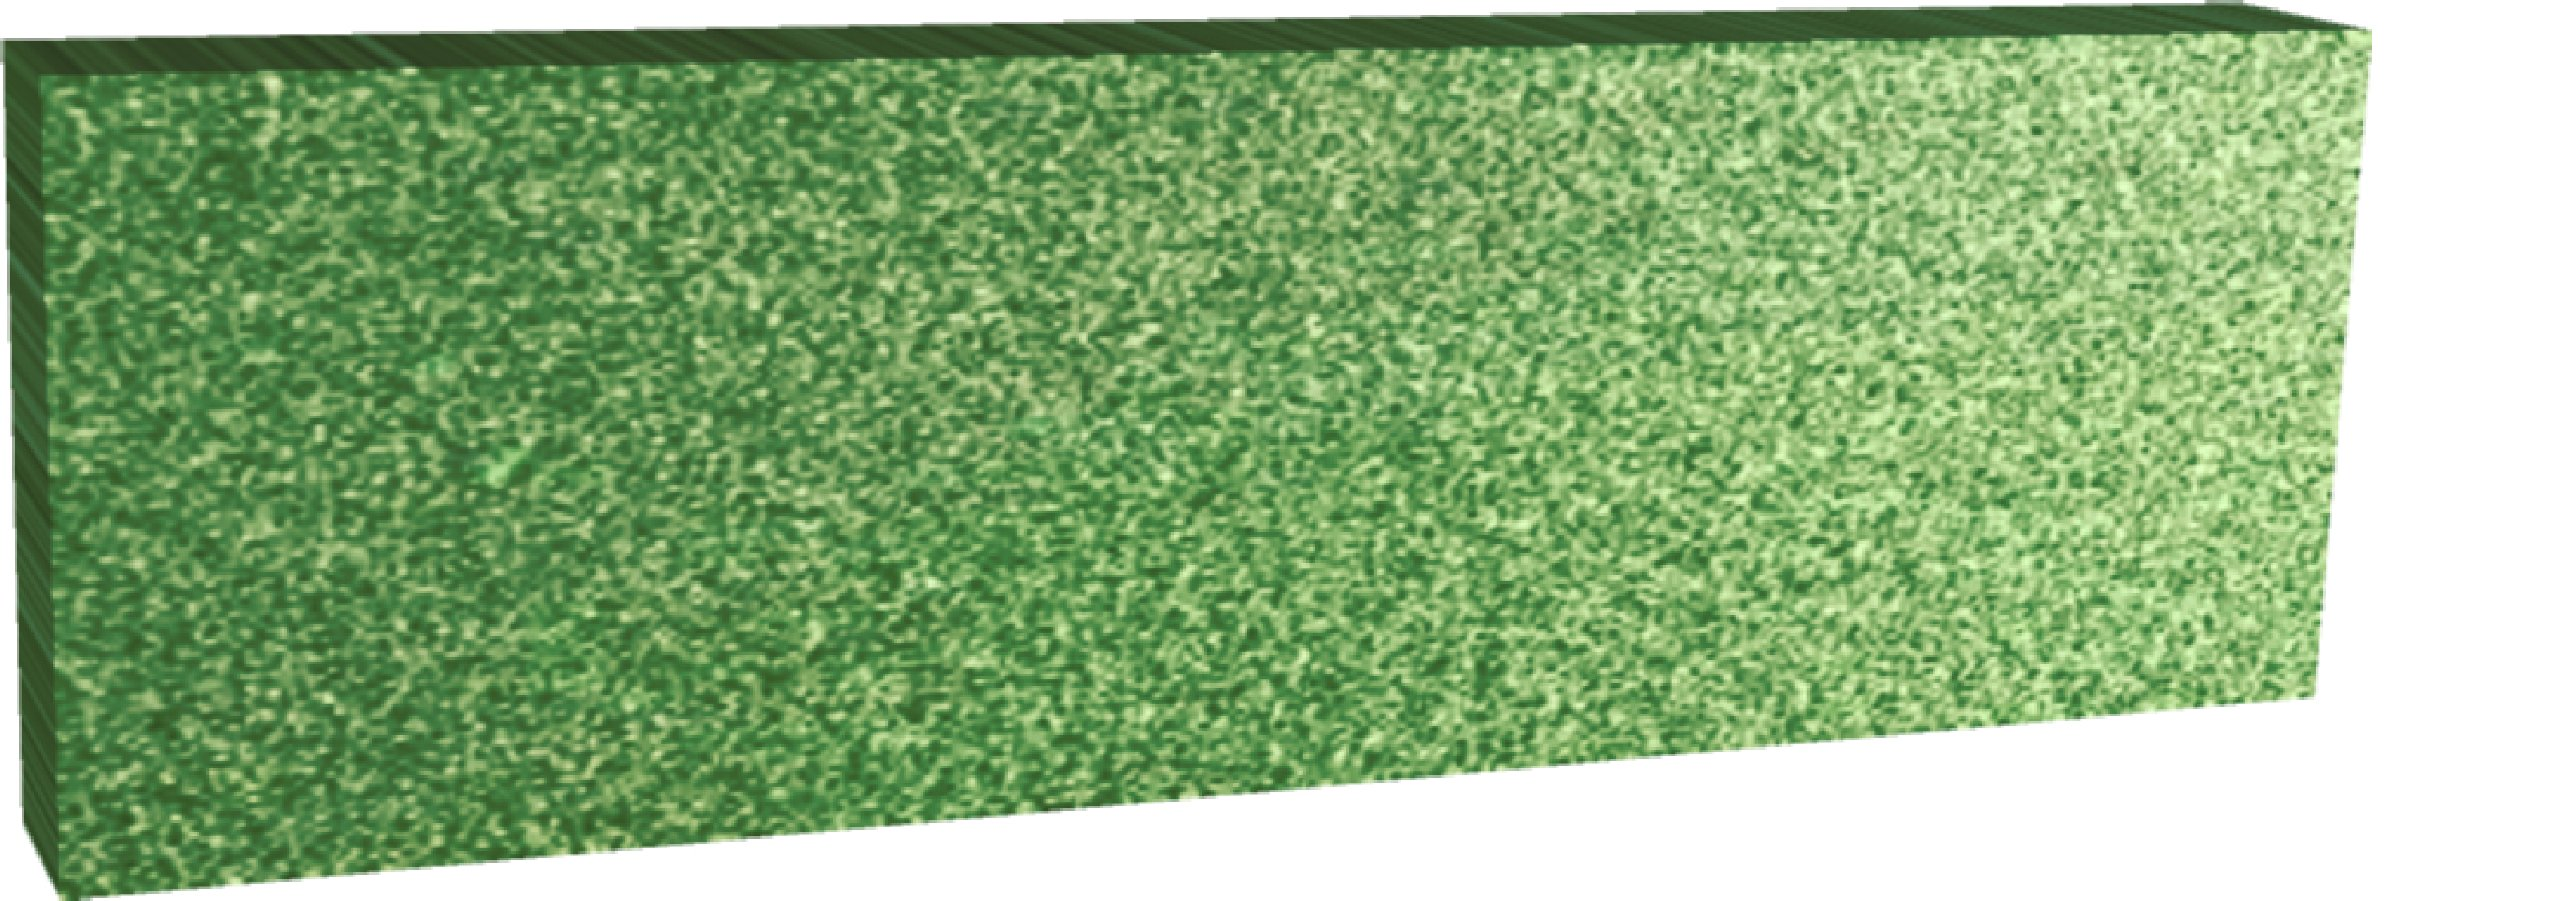 Full case of Styrofoam Green Sheets. 1'' or 2'' or 4'' thickness (Email us with your preference) by Dow